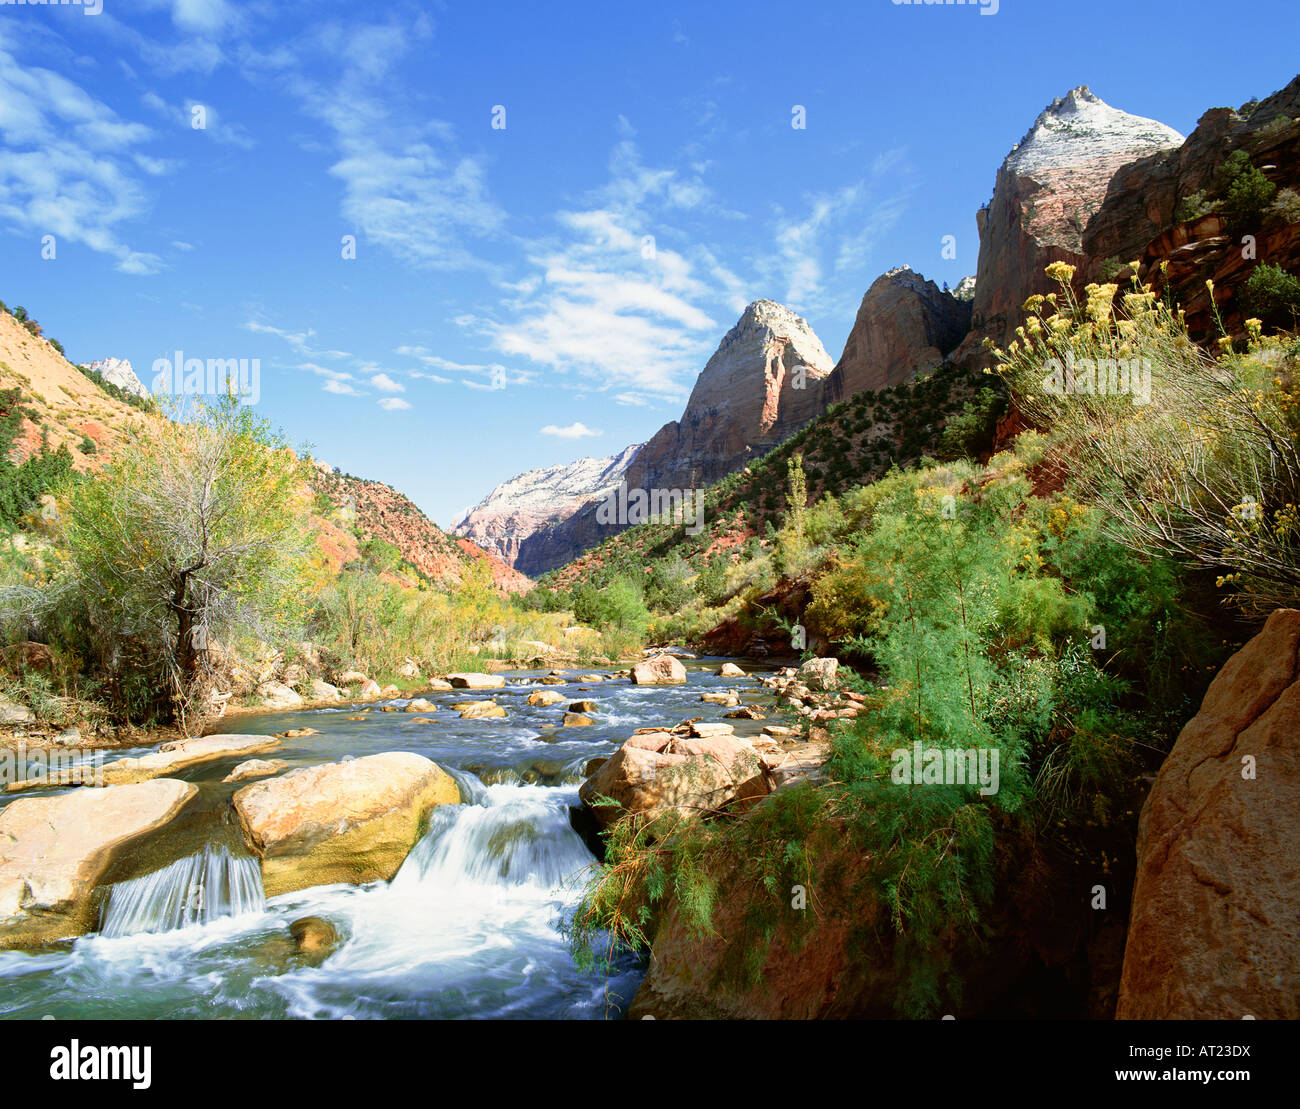 USA UTAH ZION NATIONAL PARK VIRGIN RIVER AND MOUNTAIN OF THE SUN - Stock Image